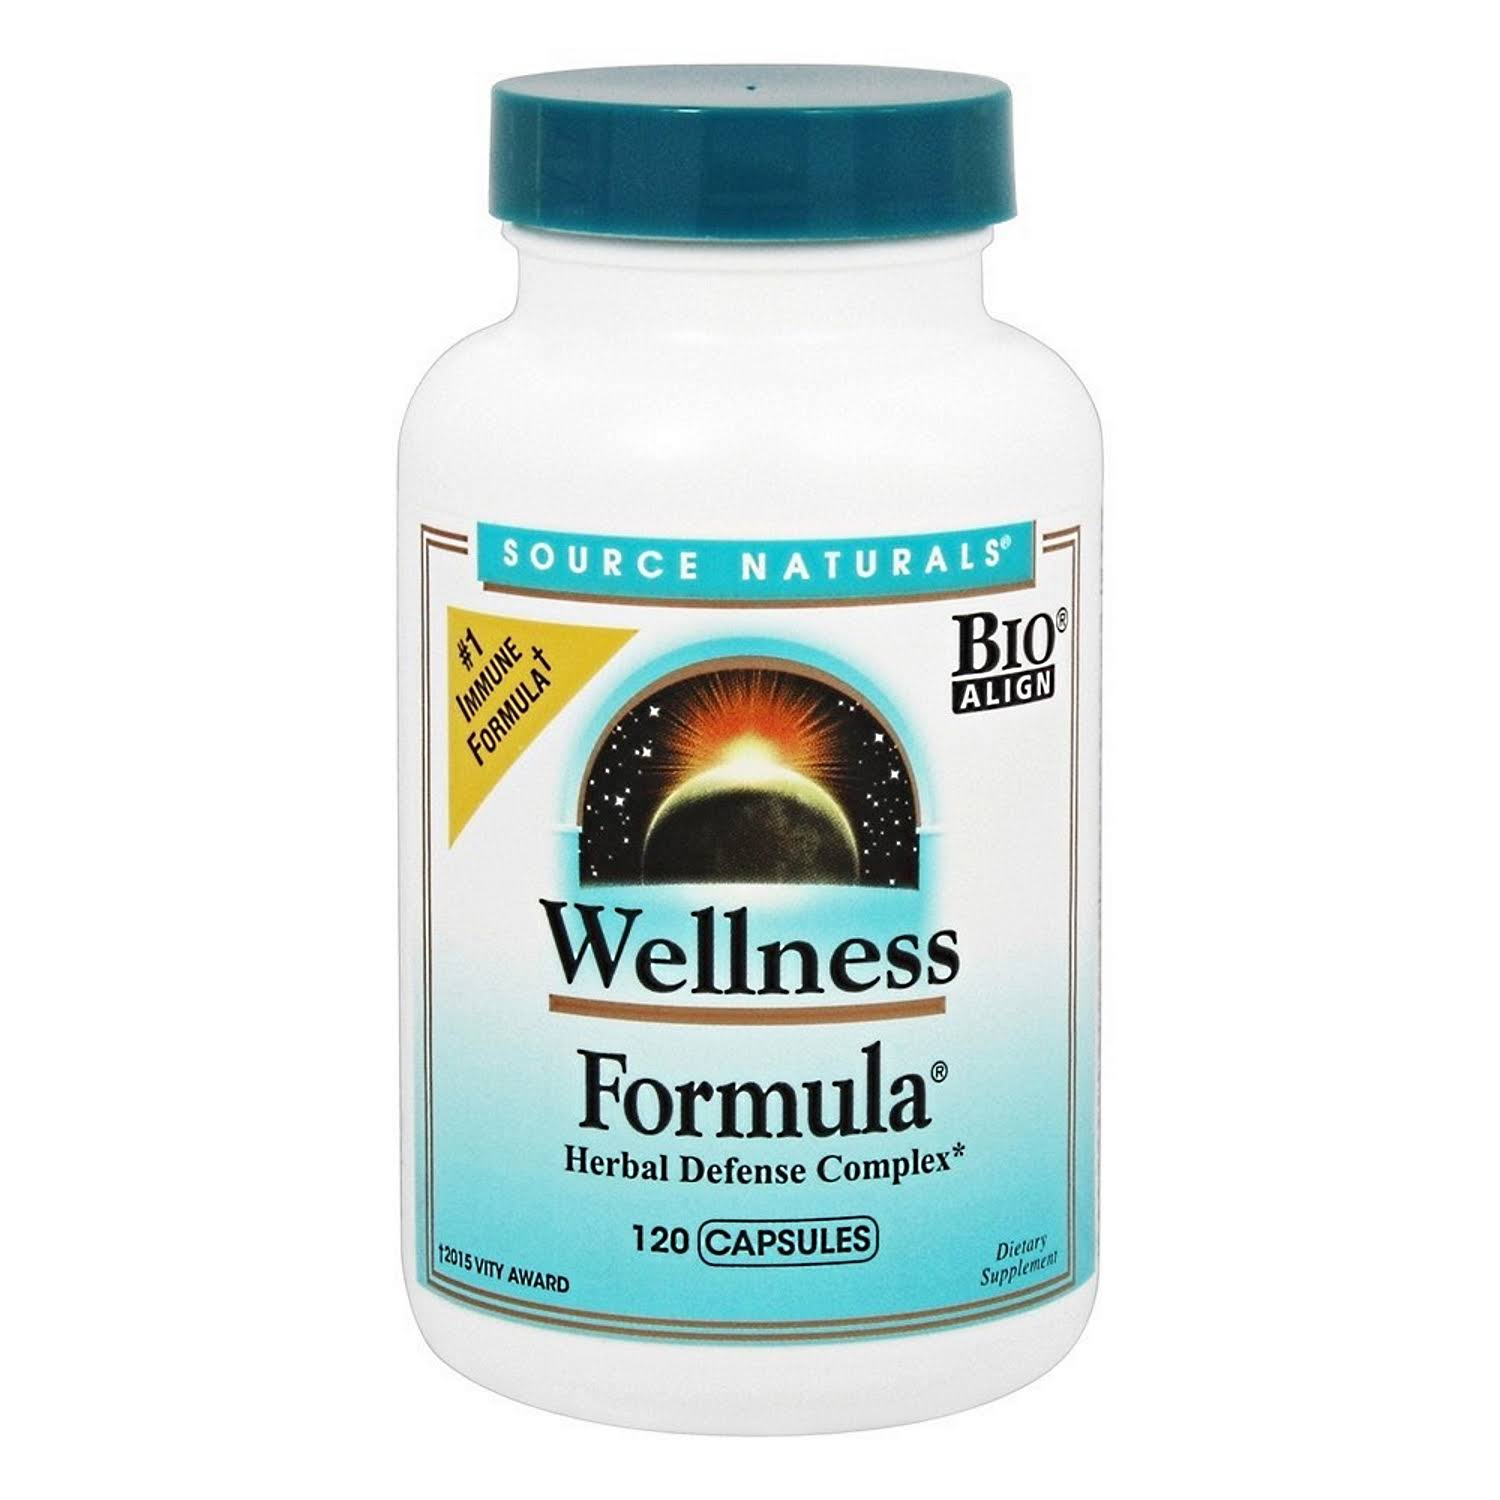 Source Naturals Wellness Formula - 120 Capsules